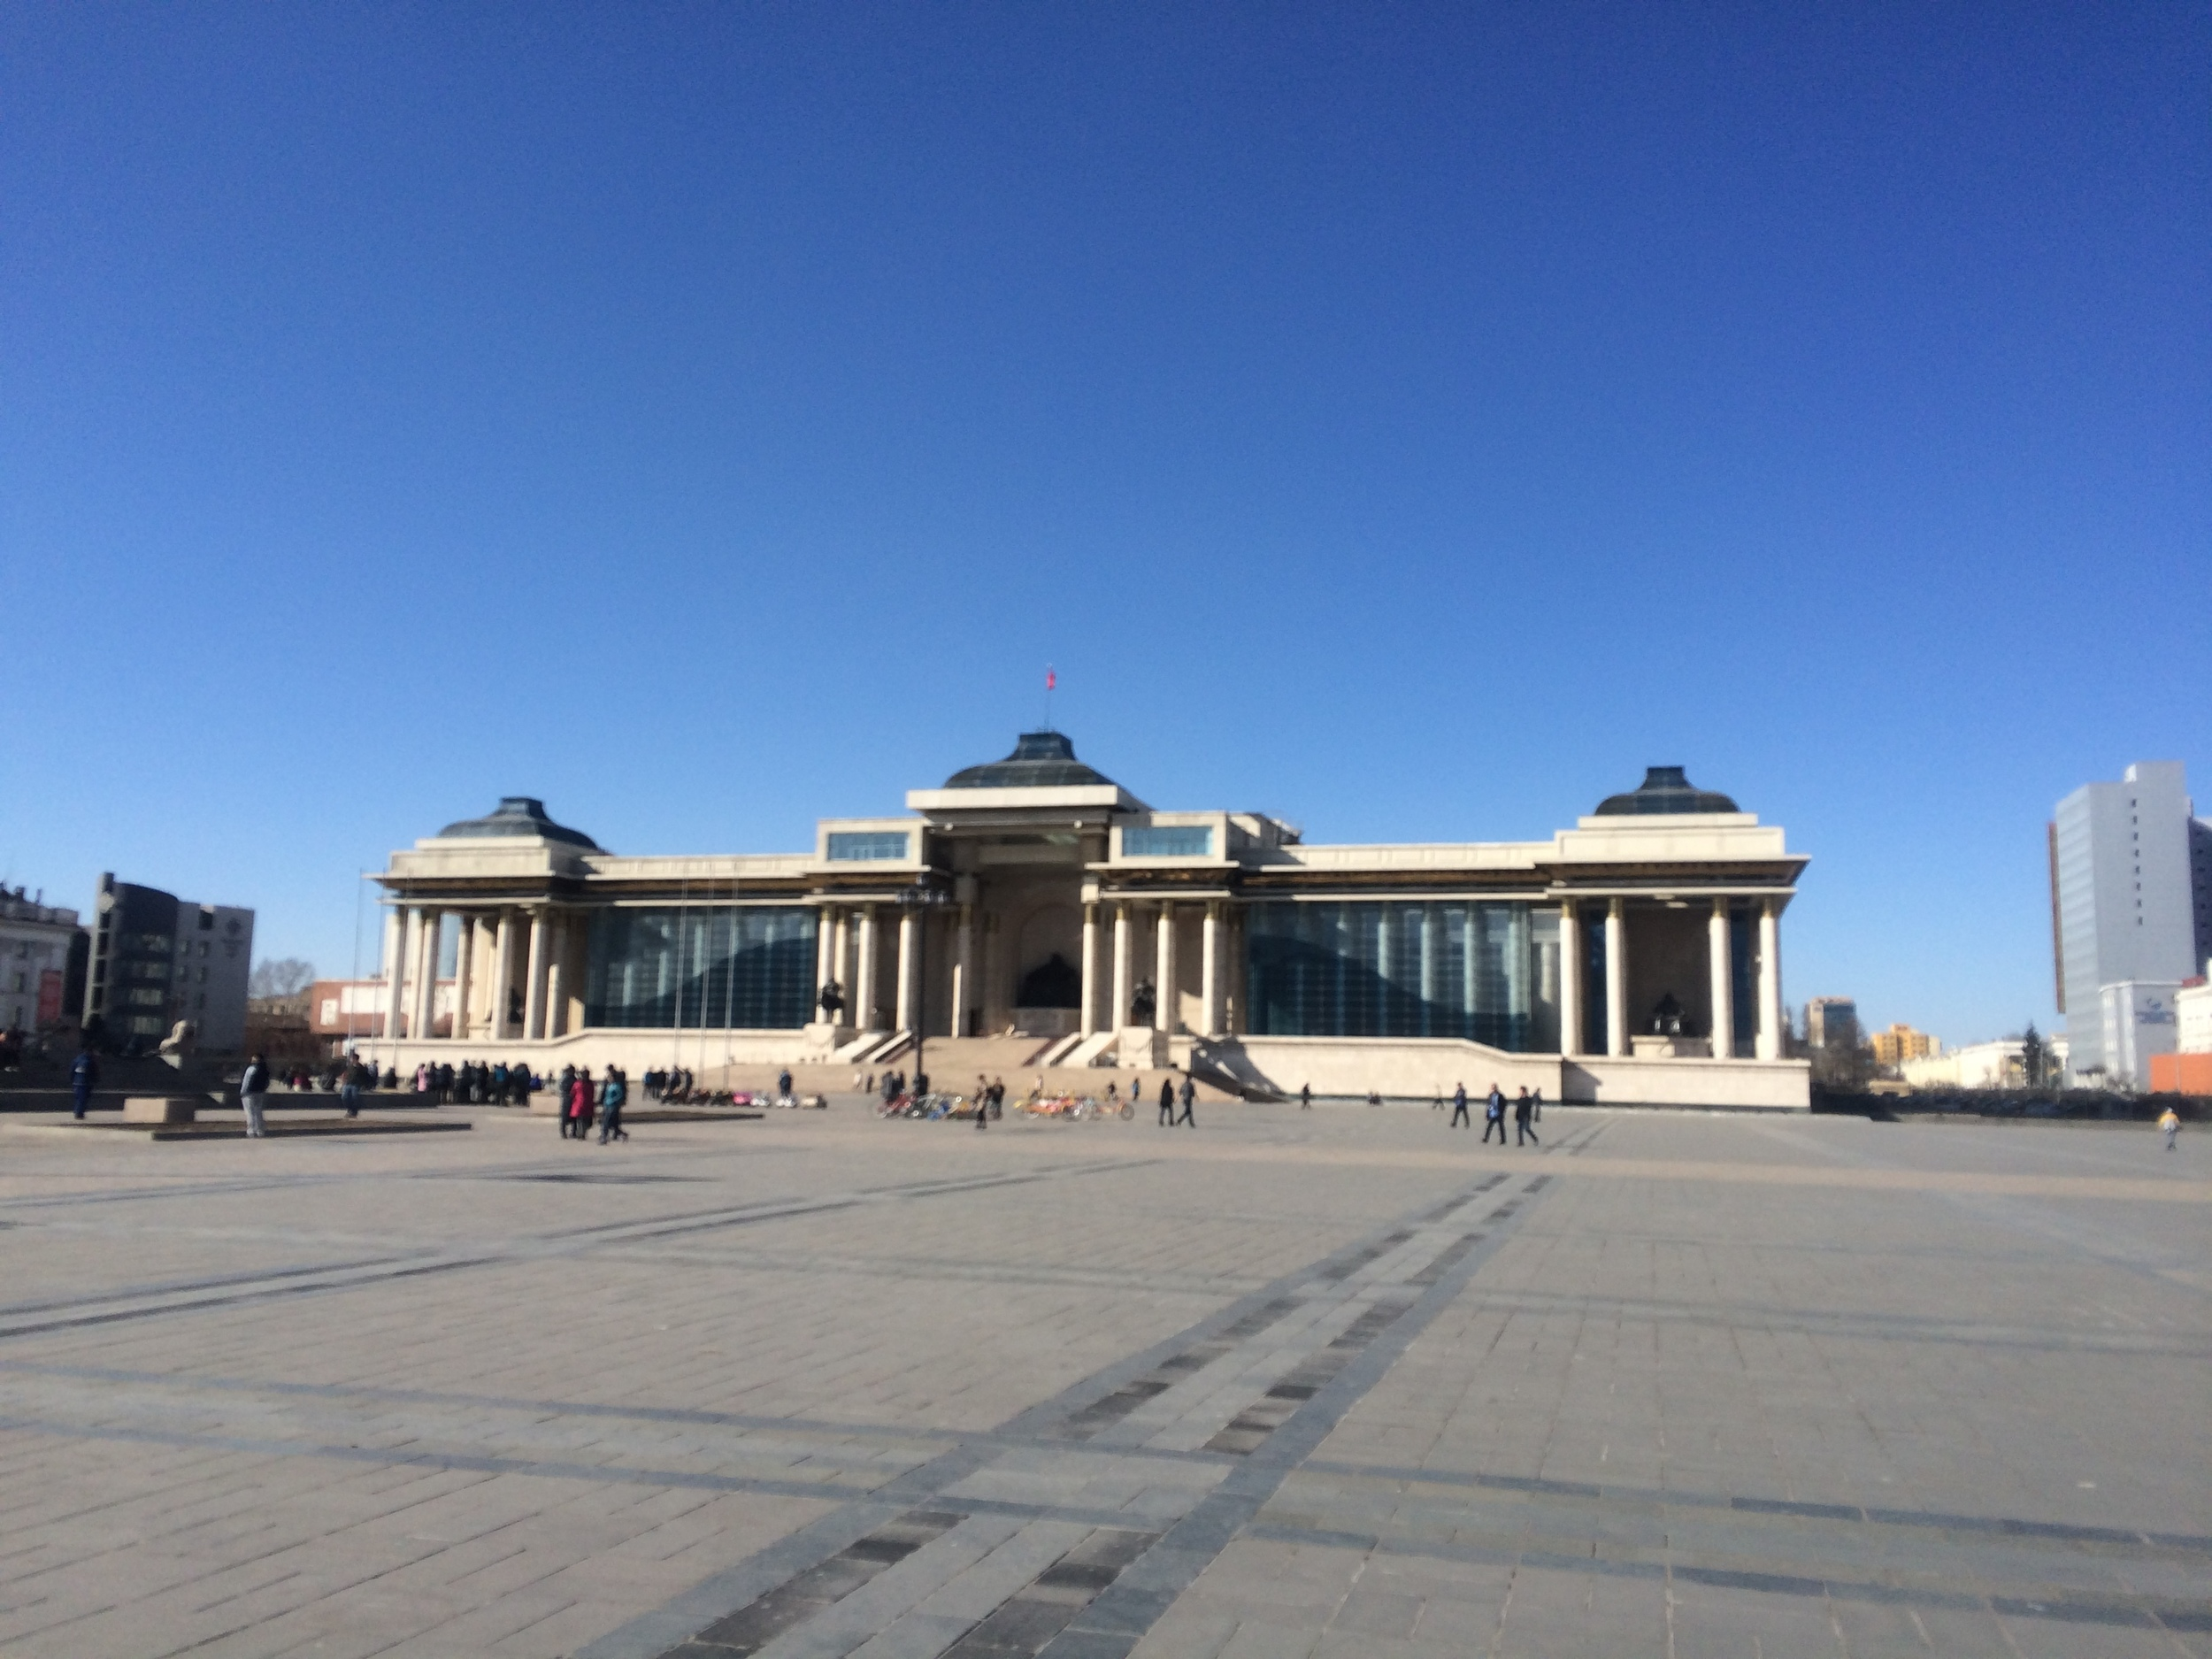 Genghis Khan Square in UB